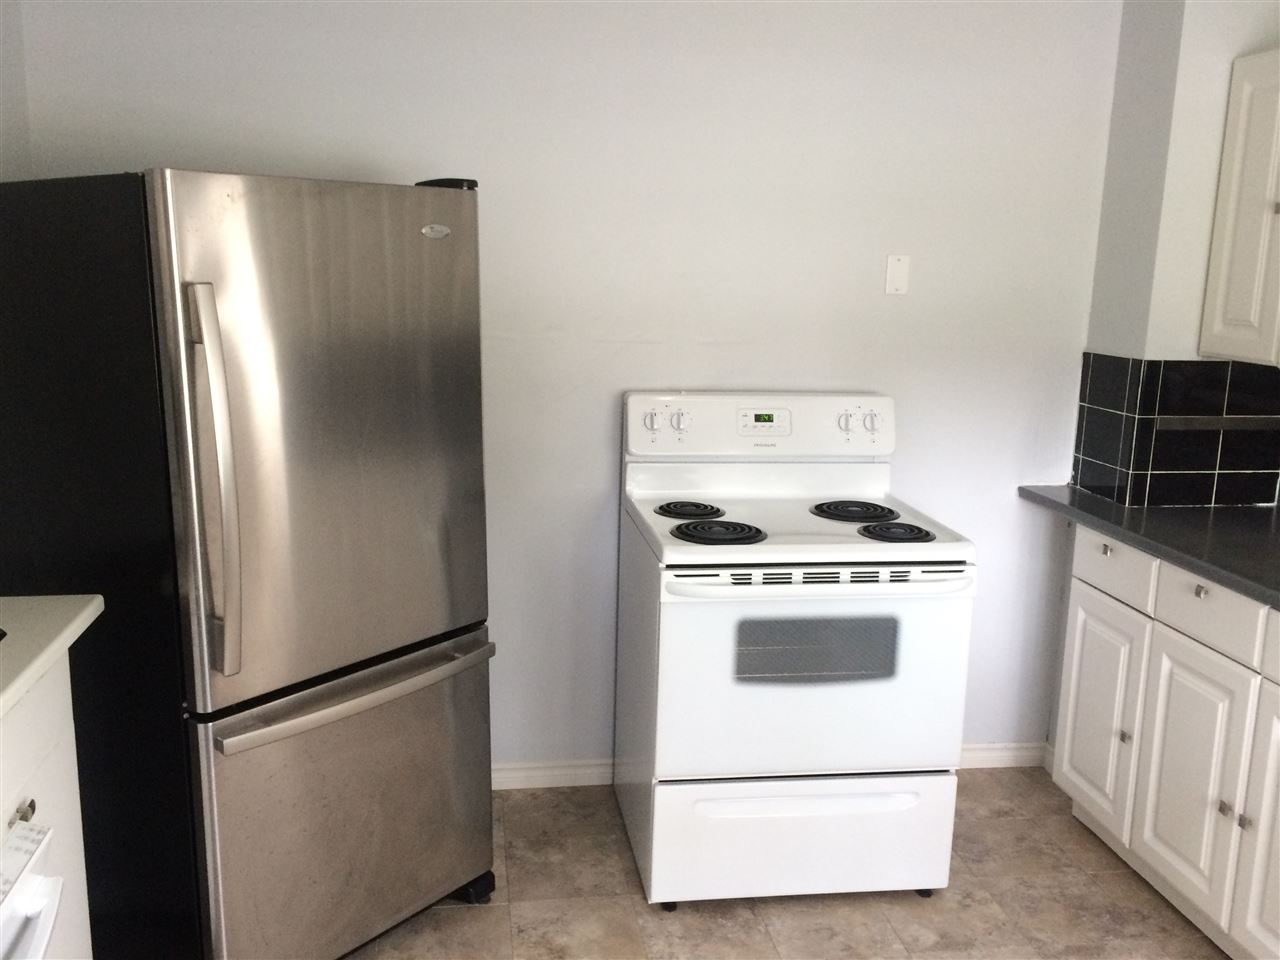 Updated kitchen and appliances